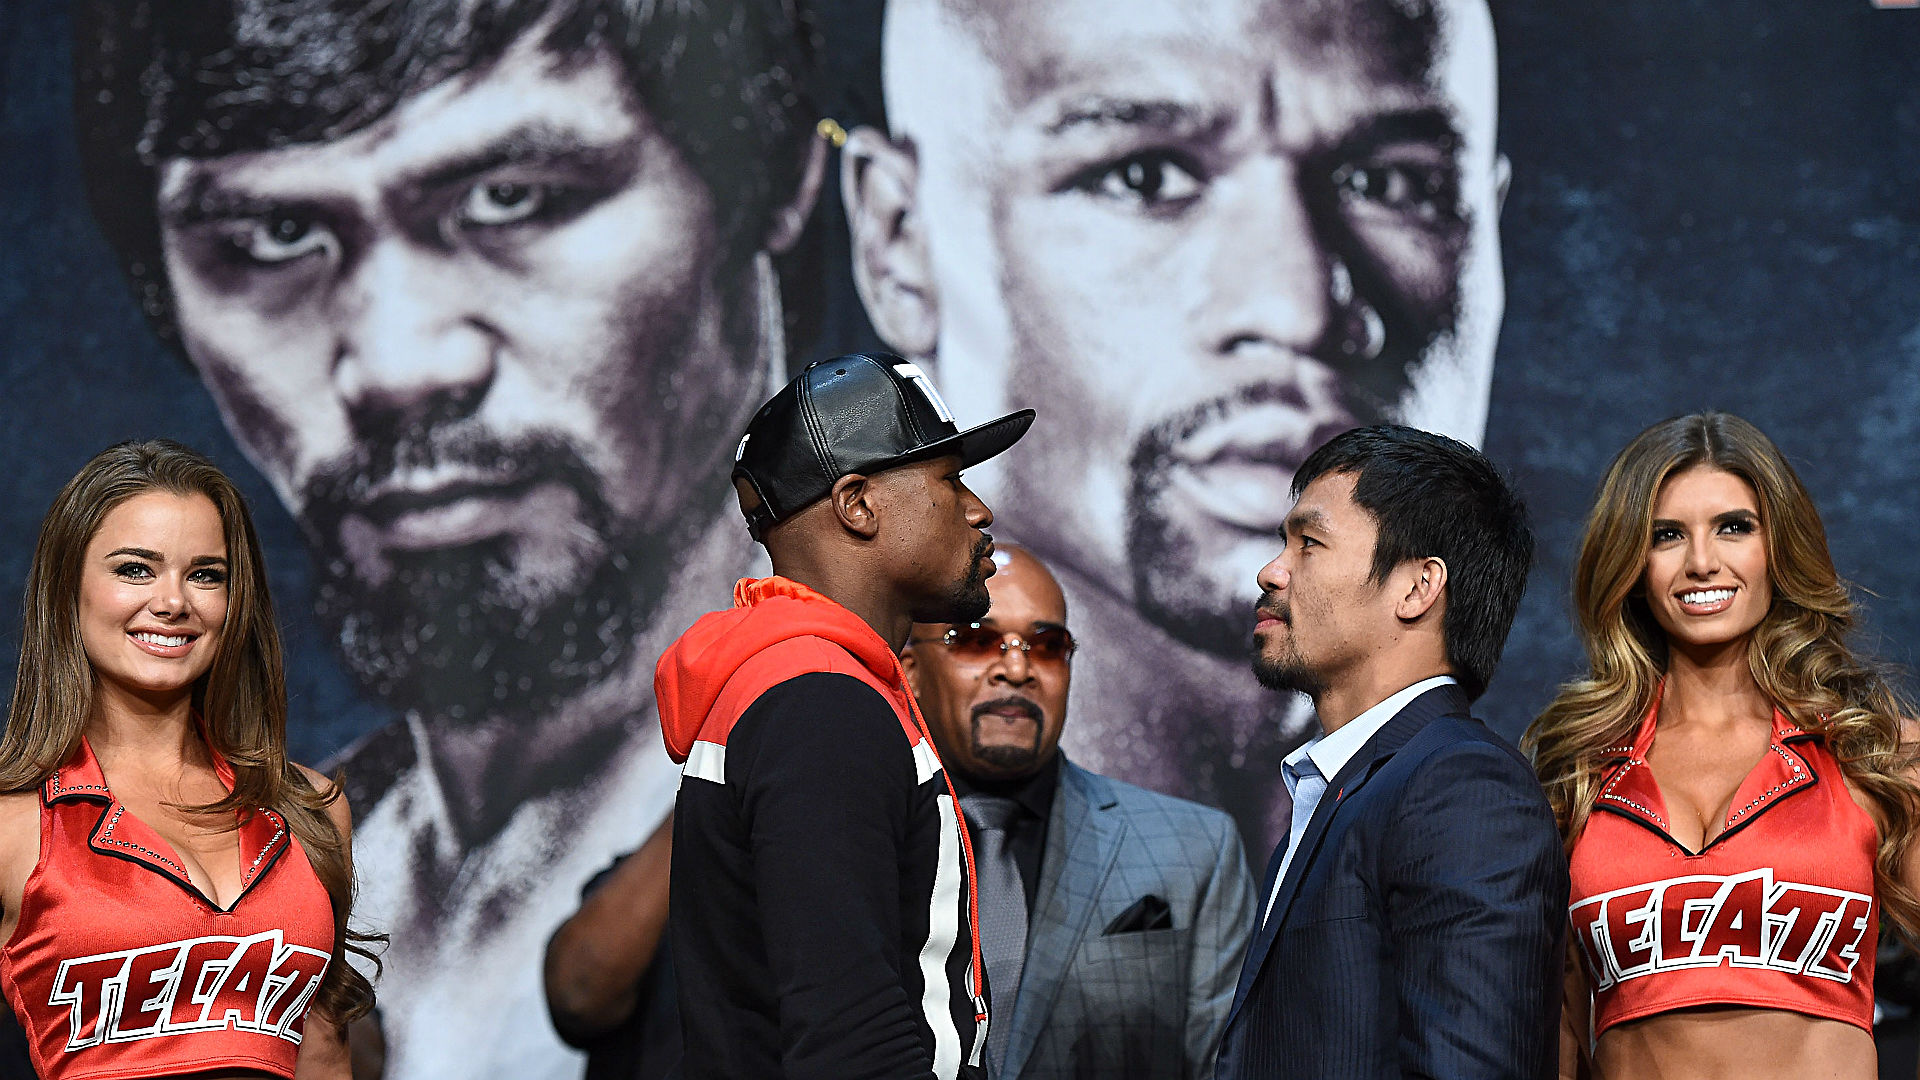 Mayweather vs. Pacquiao odds and picks – Value's on Floyd, some still lean to Manny